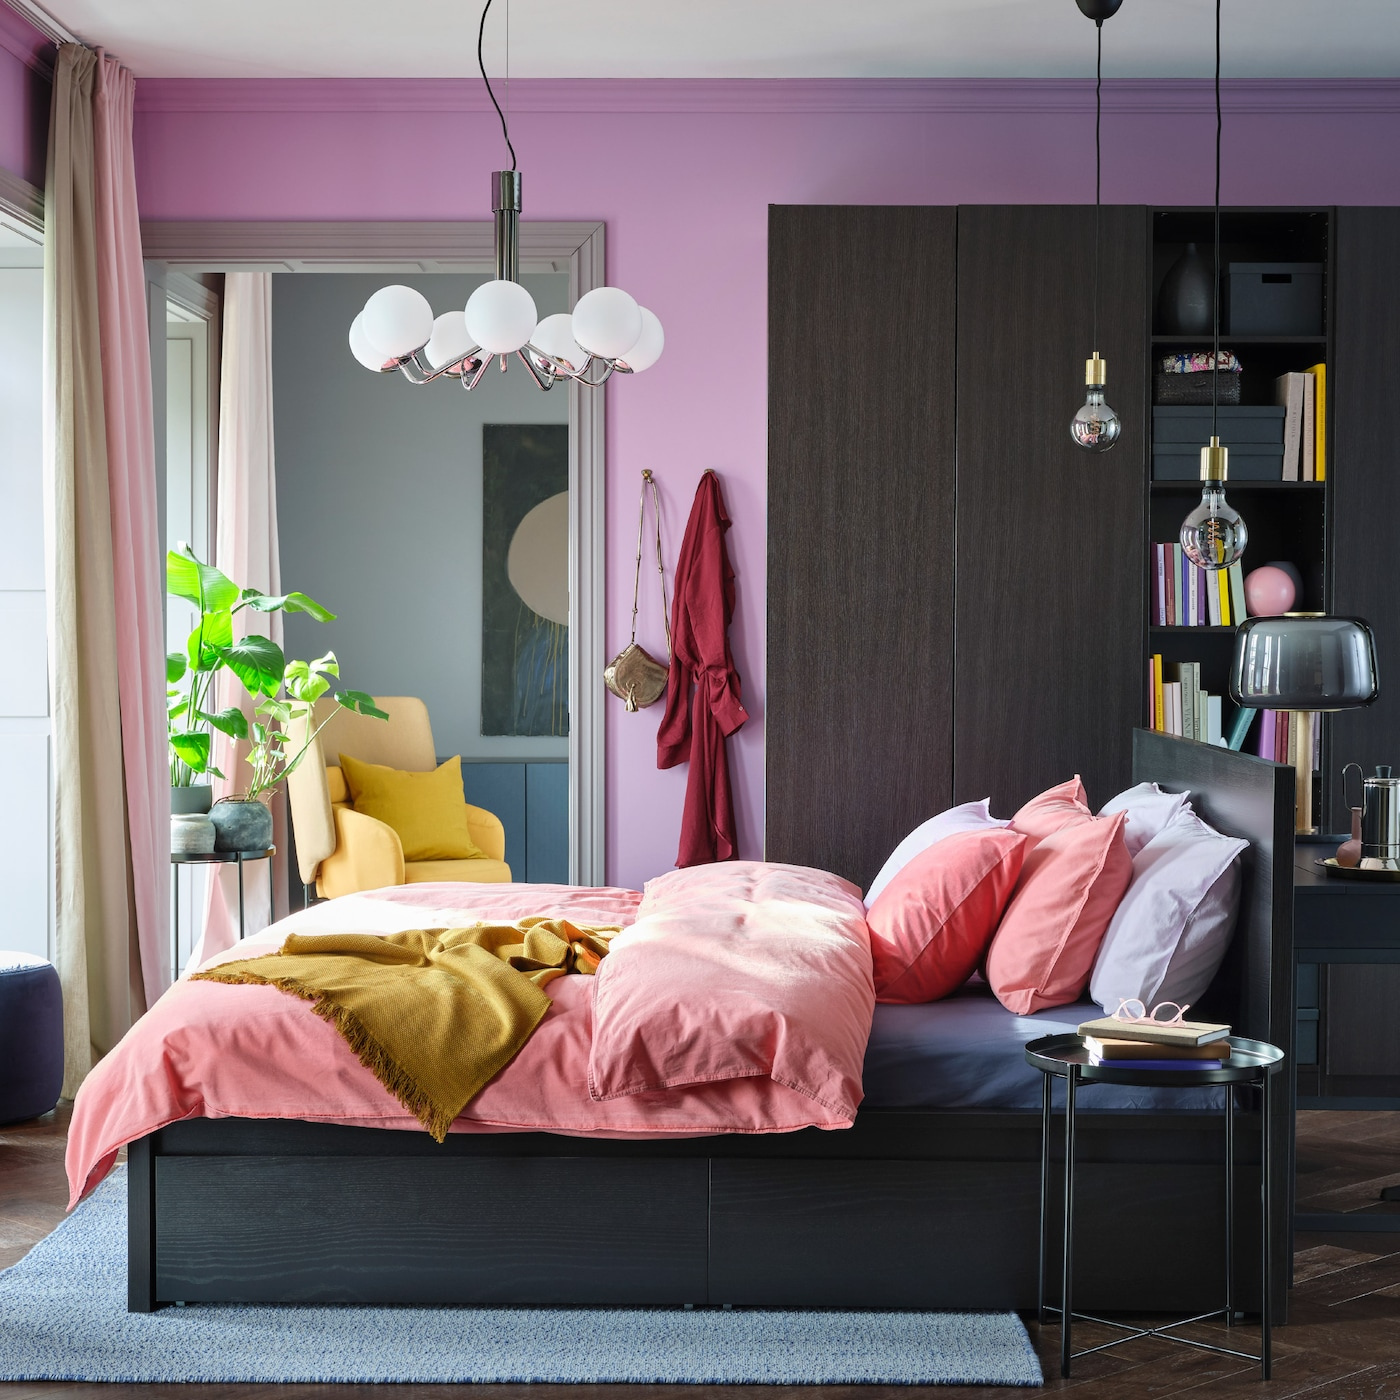 A colourful bedroom with lilac walls, light brown-red bed linen, a yellow throw and a wardrobe and bed frame in black-brown.